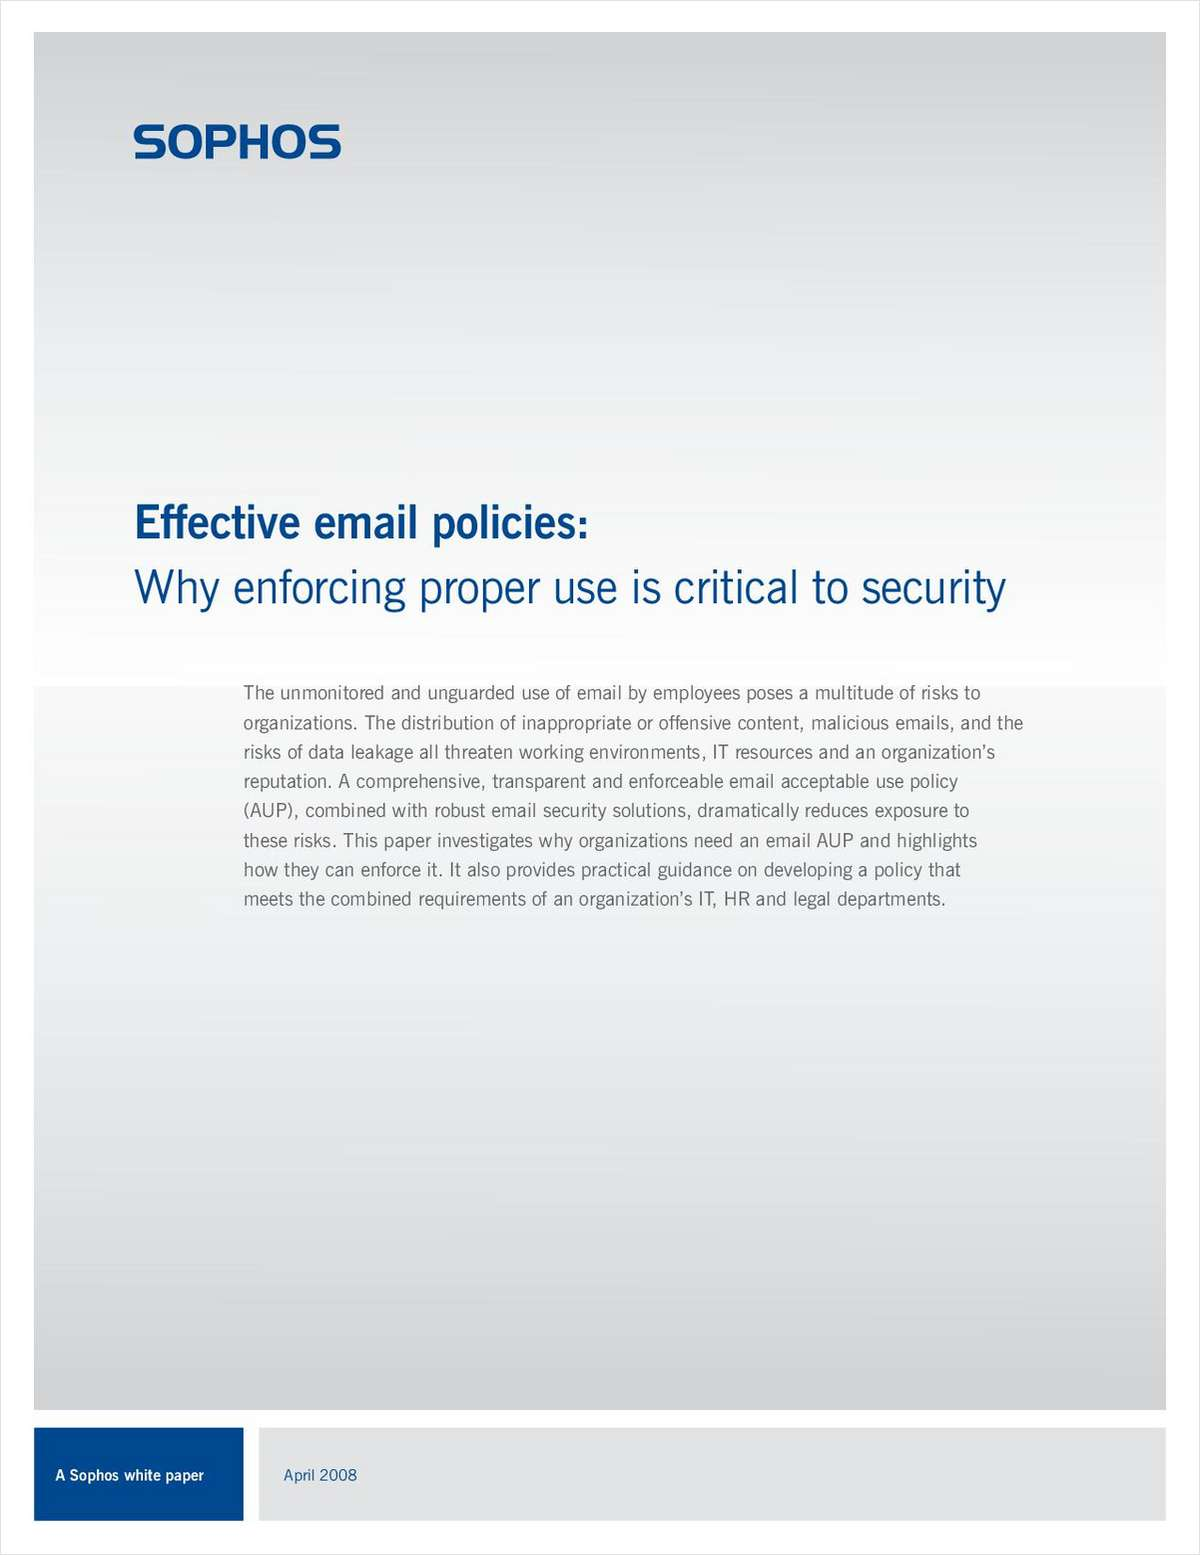 Effective Email Policies: Why Enforcing Proper Use is Critical to Security